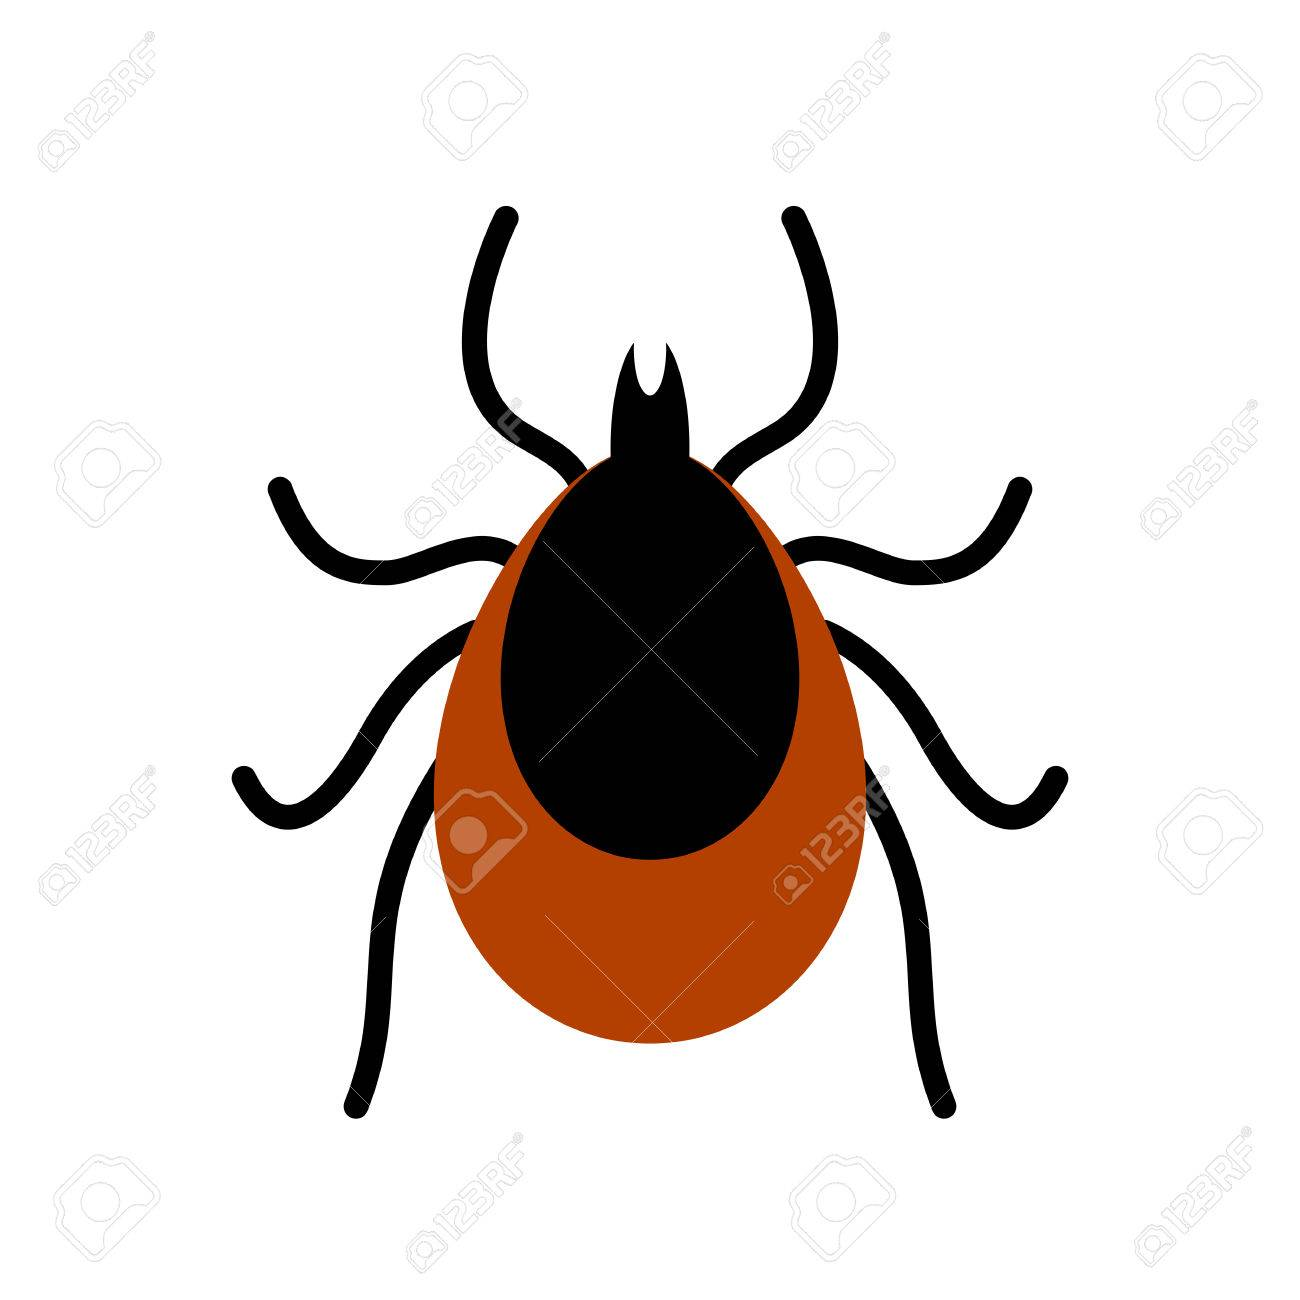 Mite Tick Vector Icon Royalty Free Cliparts, Vectors, And Stock ...